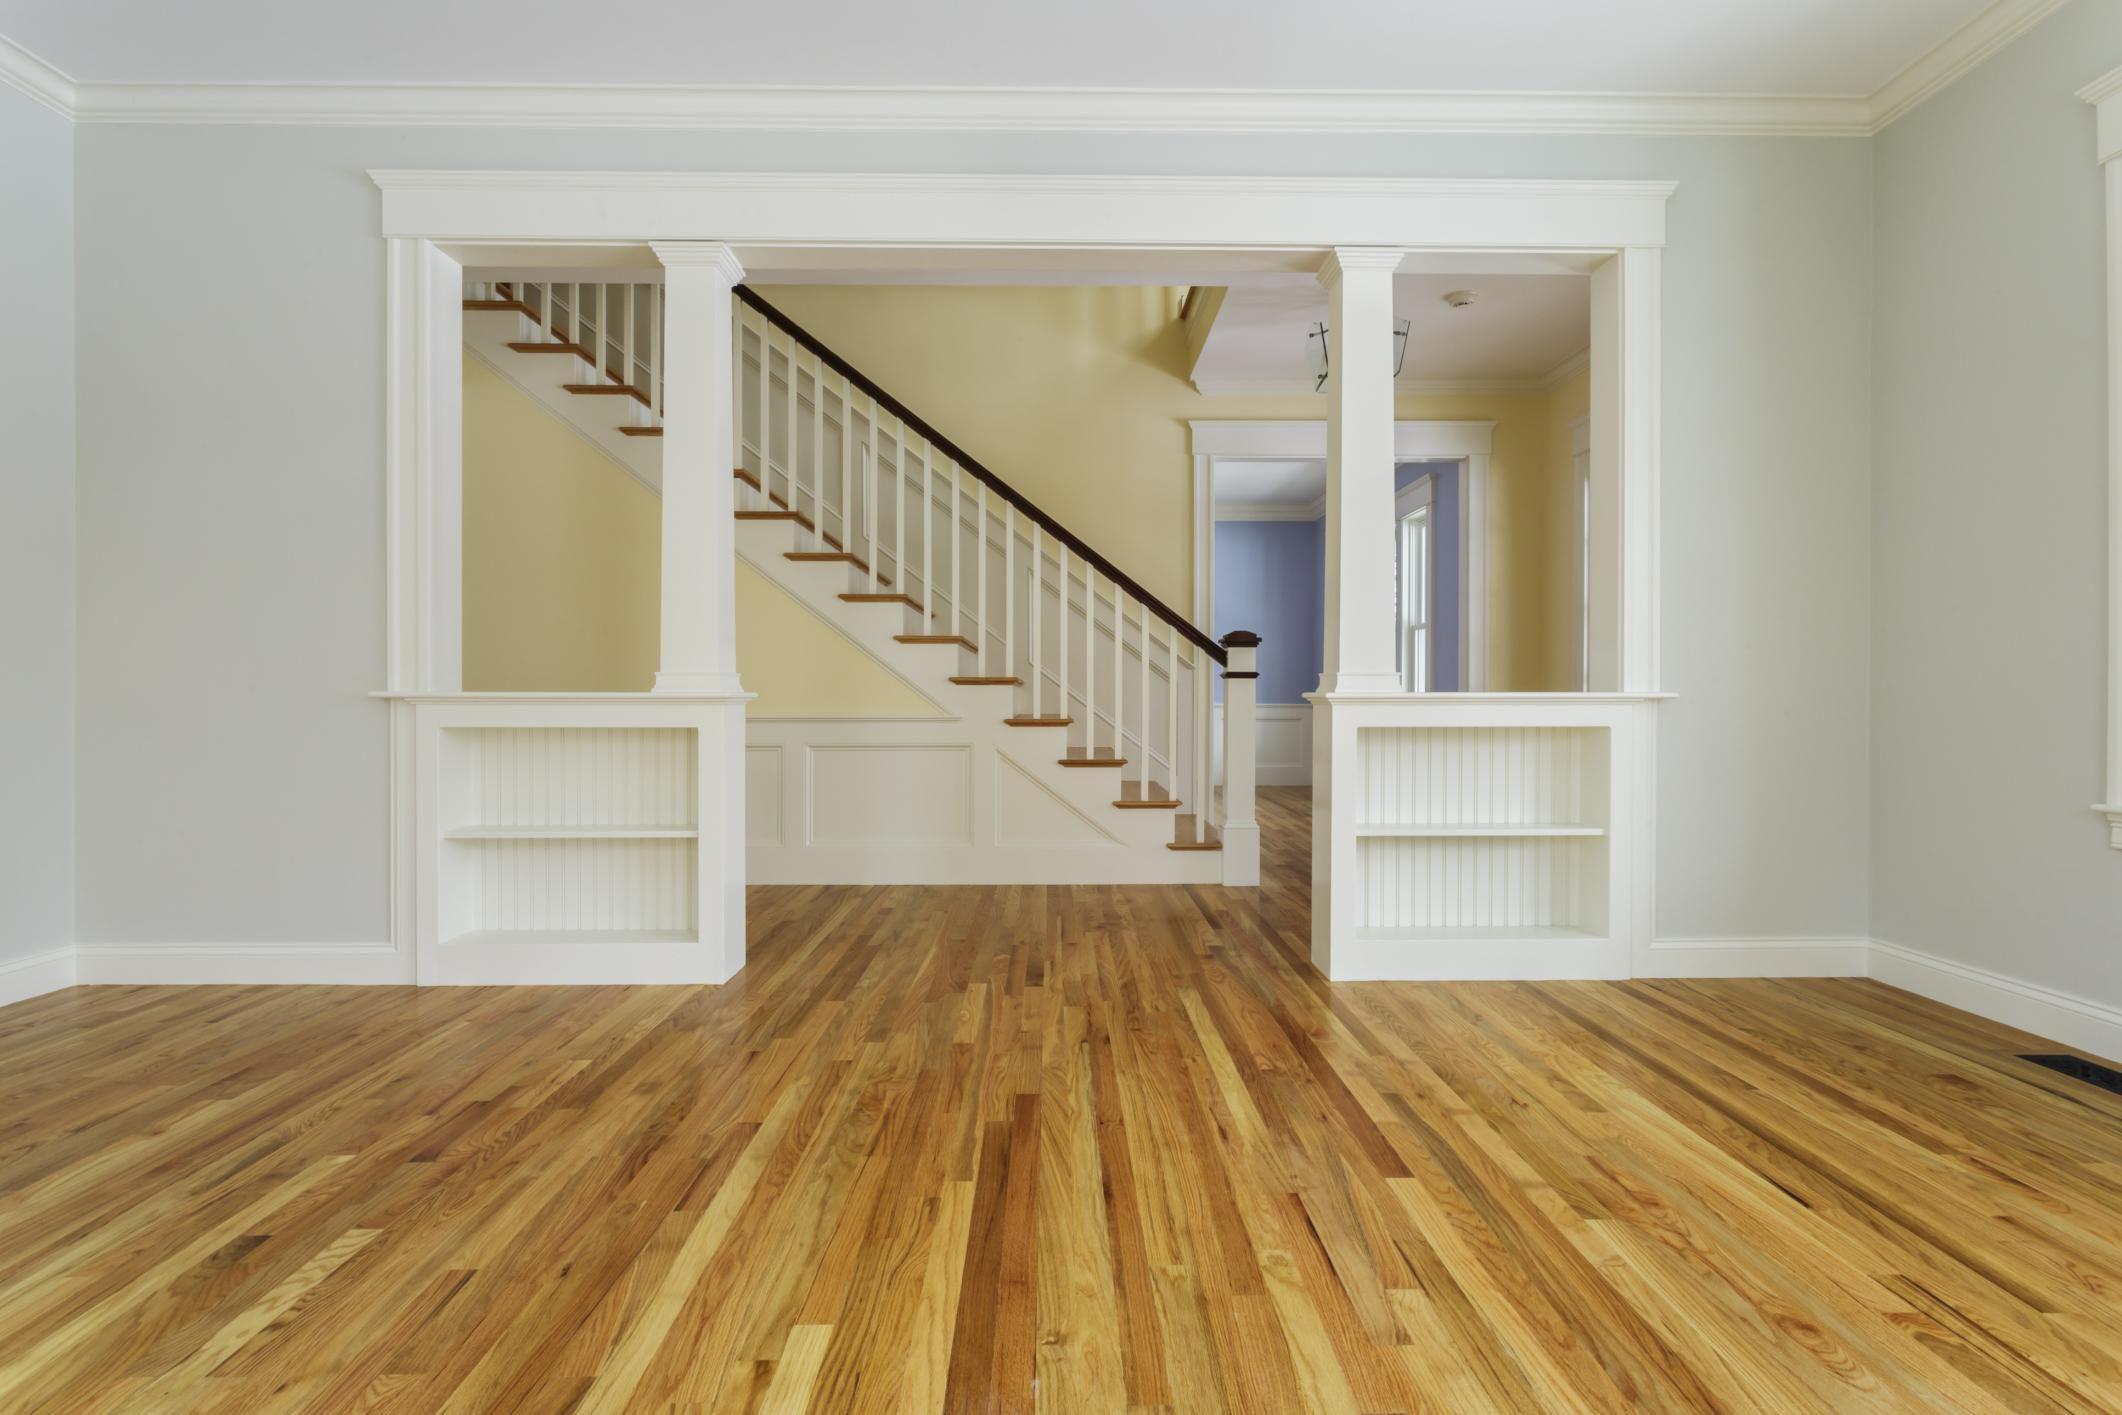 diy sand and stain hardwood floors of guide to solid hardwood floors pertaining to 168686571 56a49f213df78cf772834e24